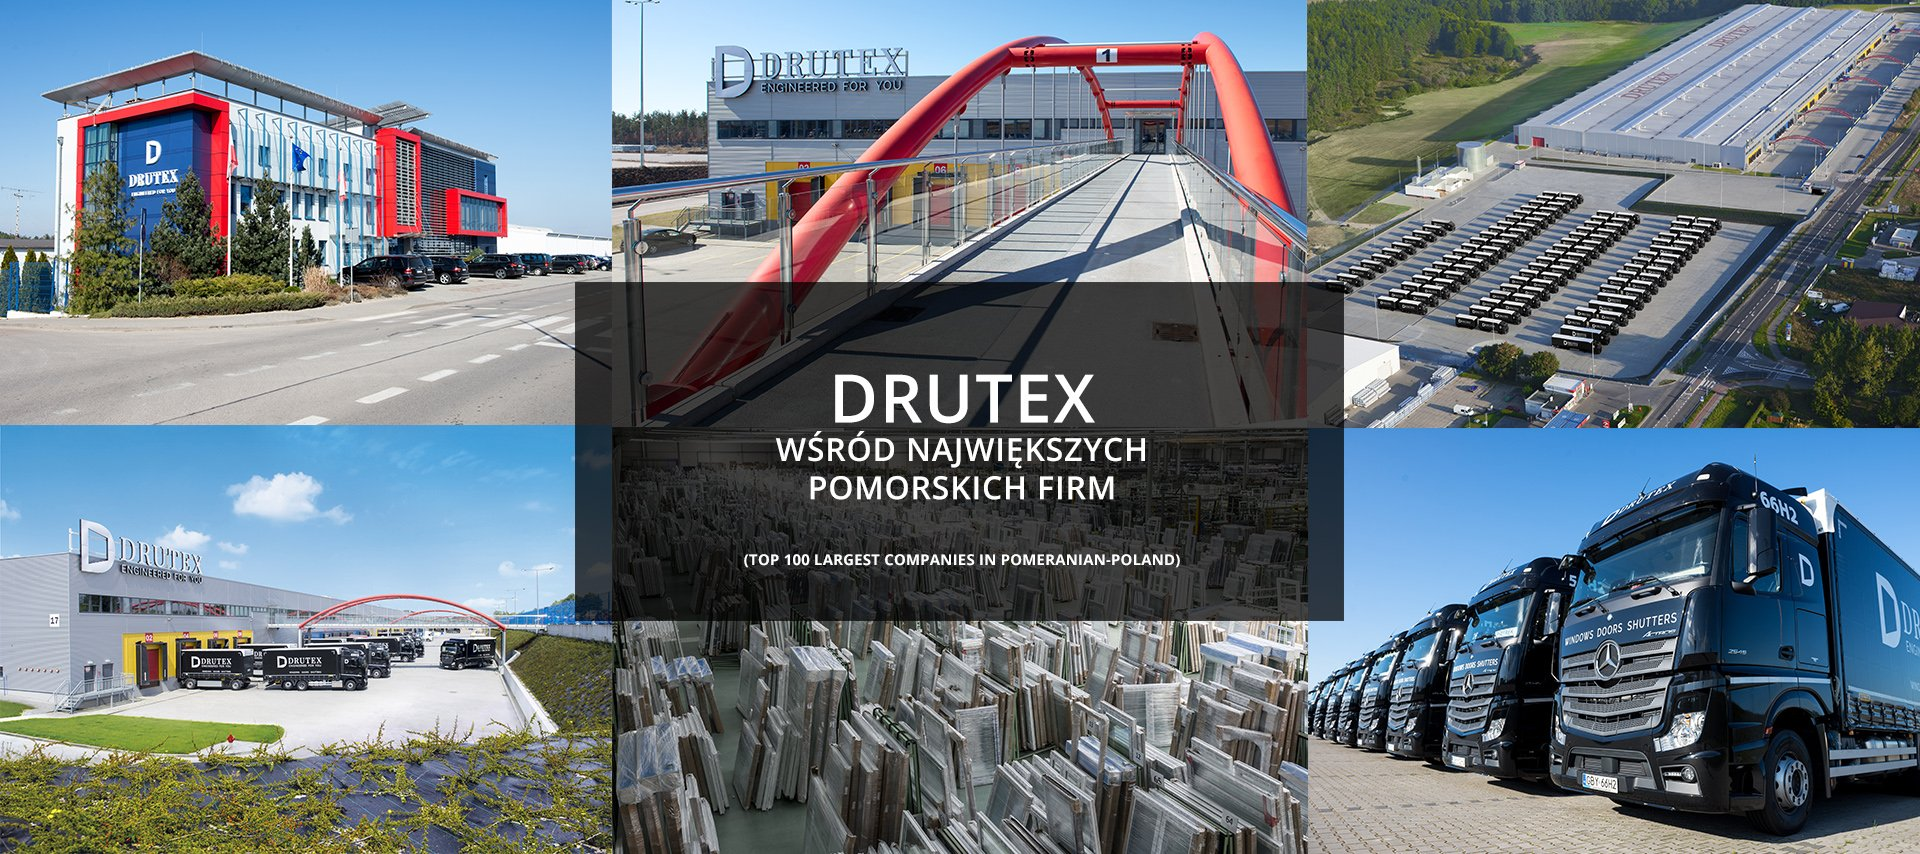 Drutex among the biggest Pomeranian companies